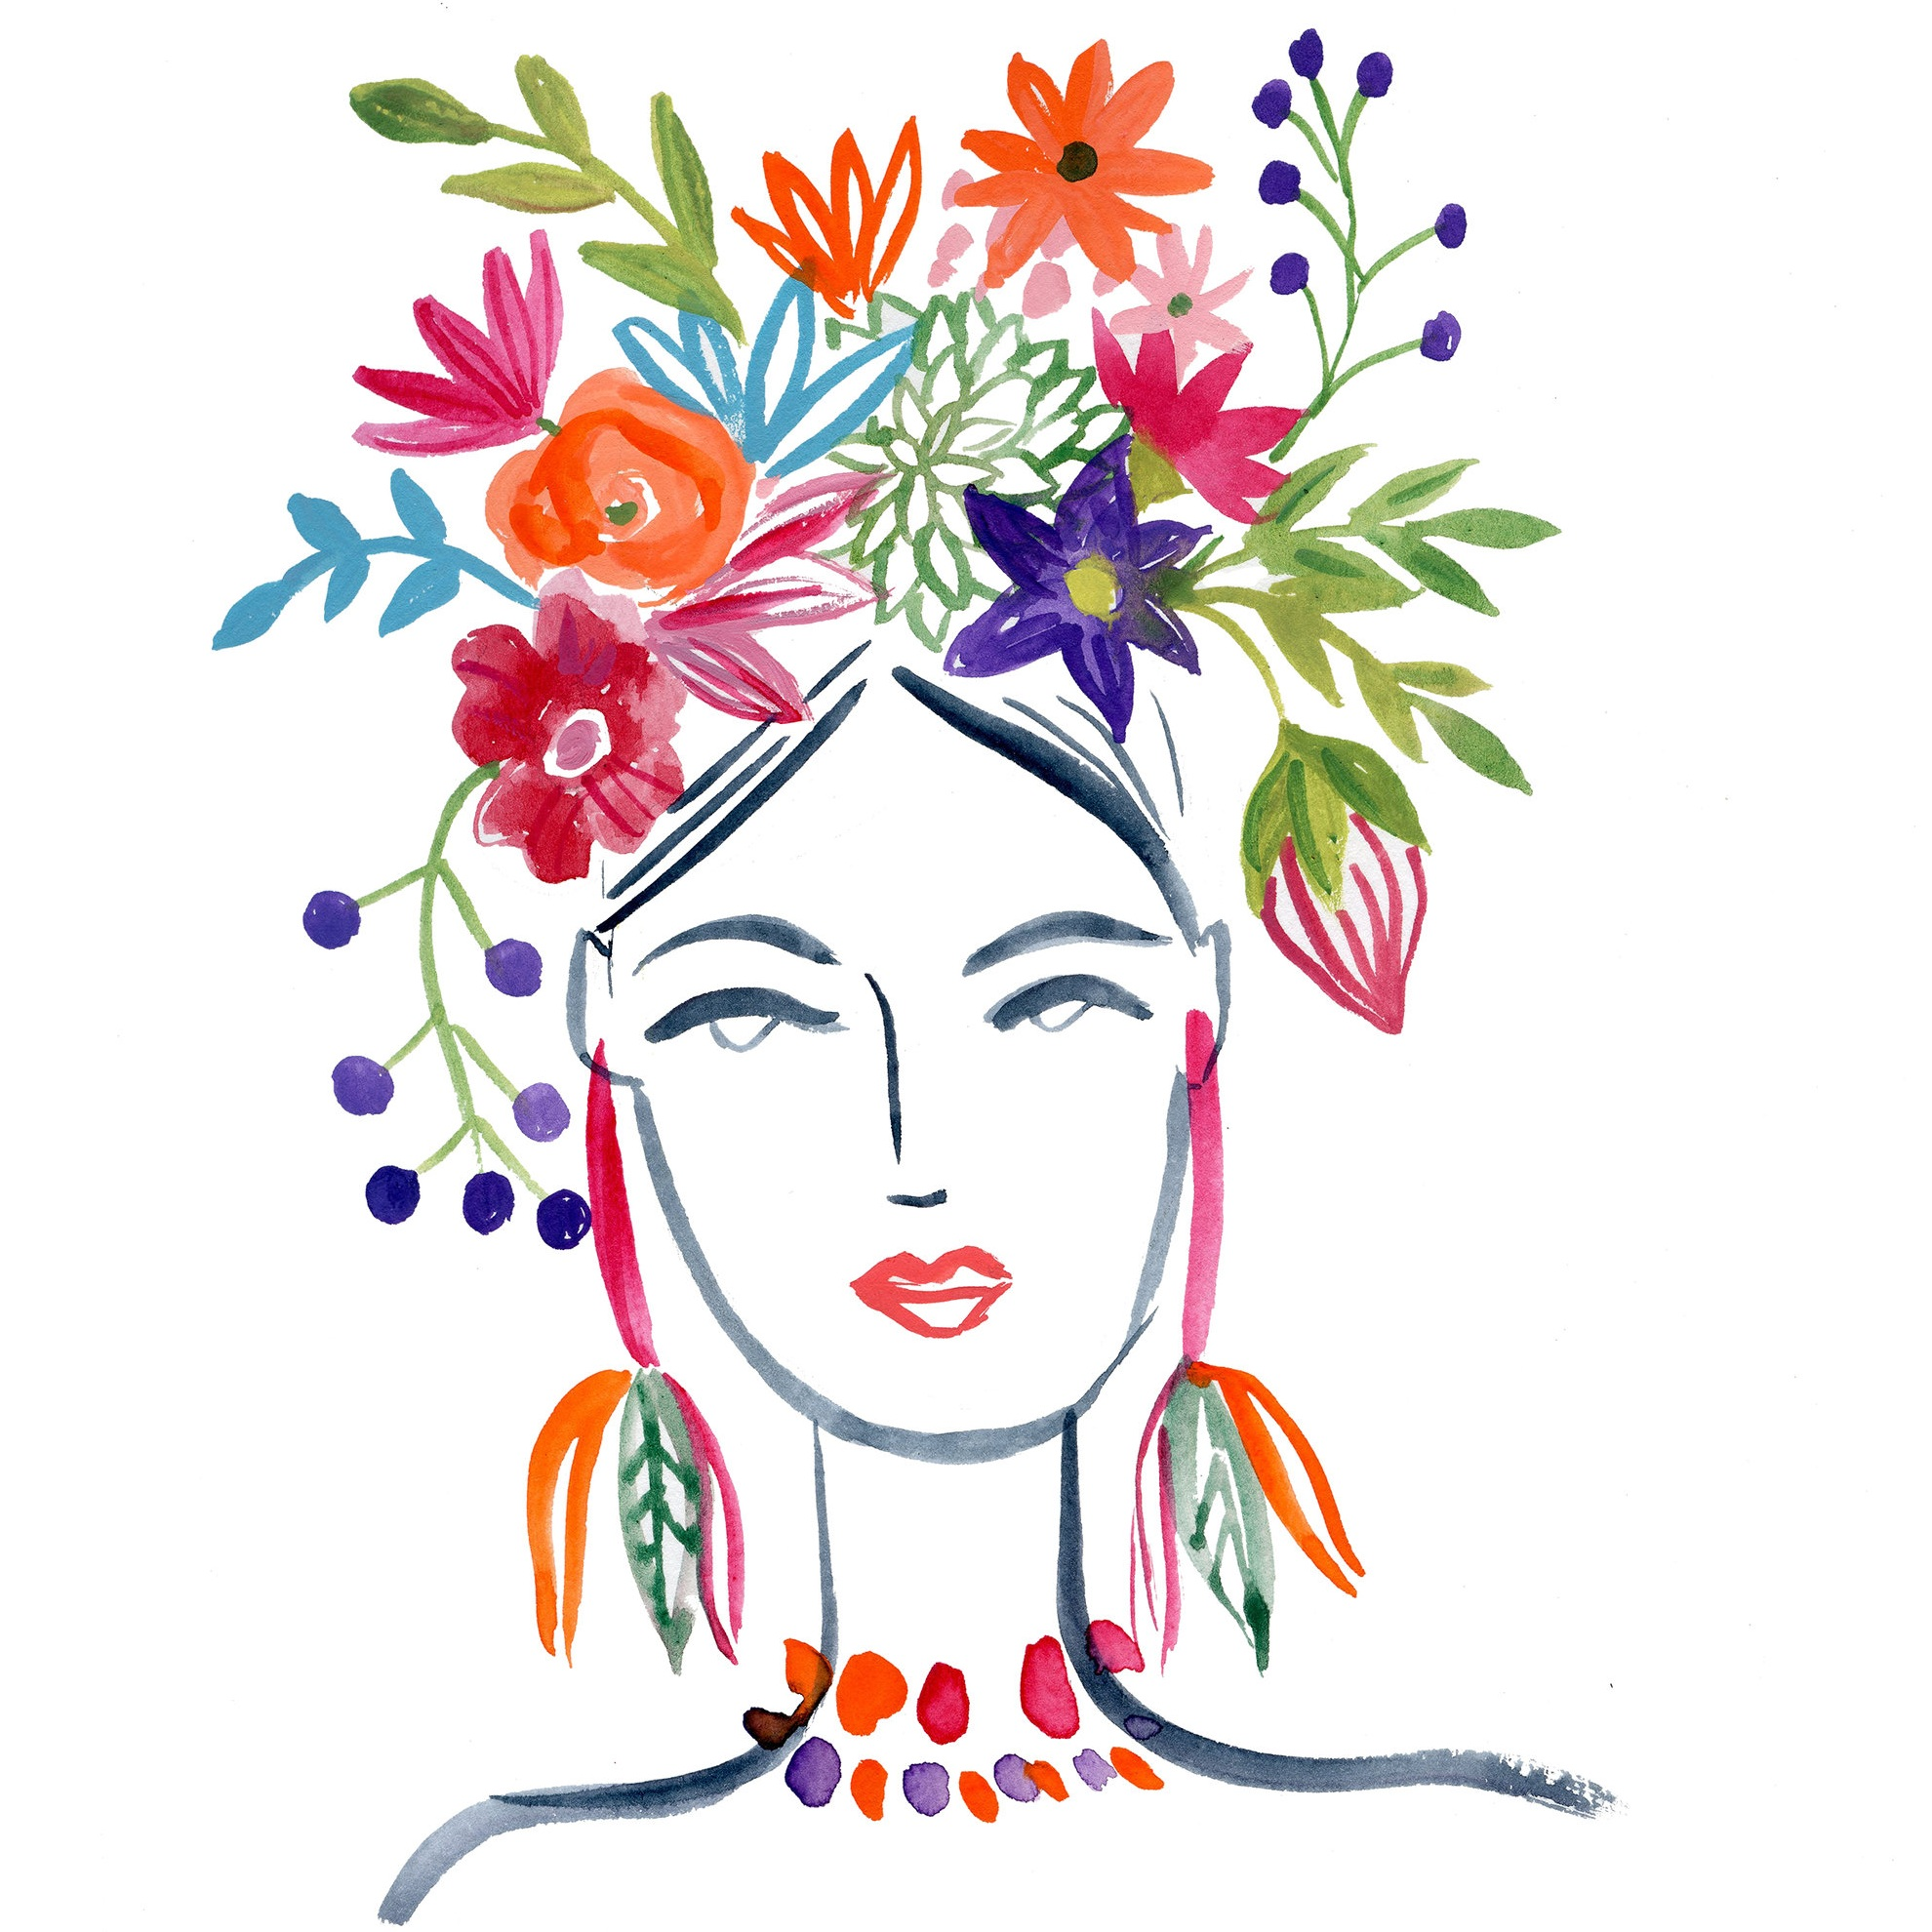 floral-crown-girl.jpg